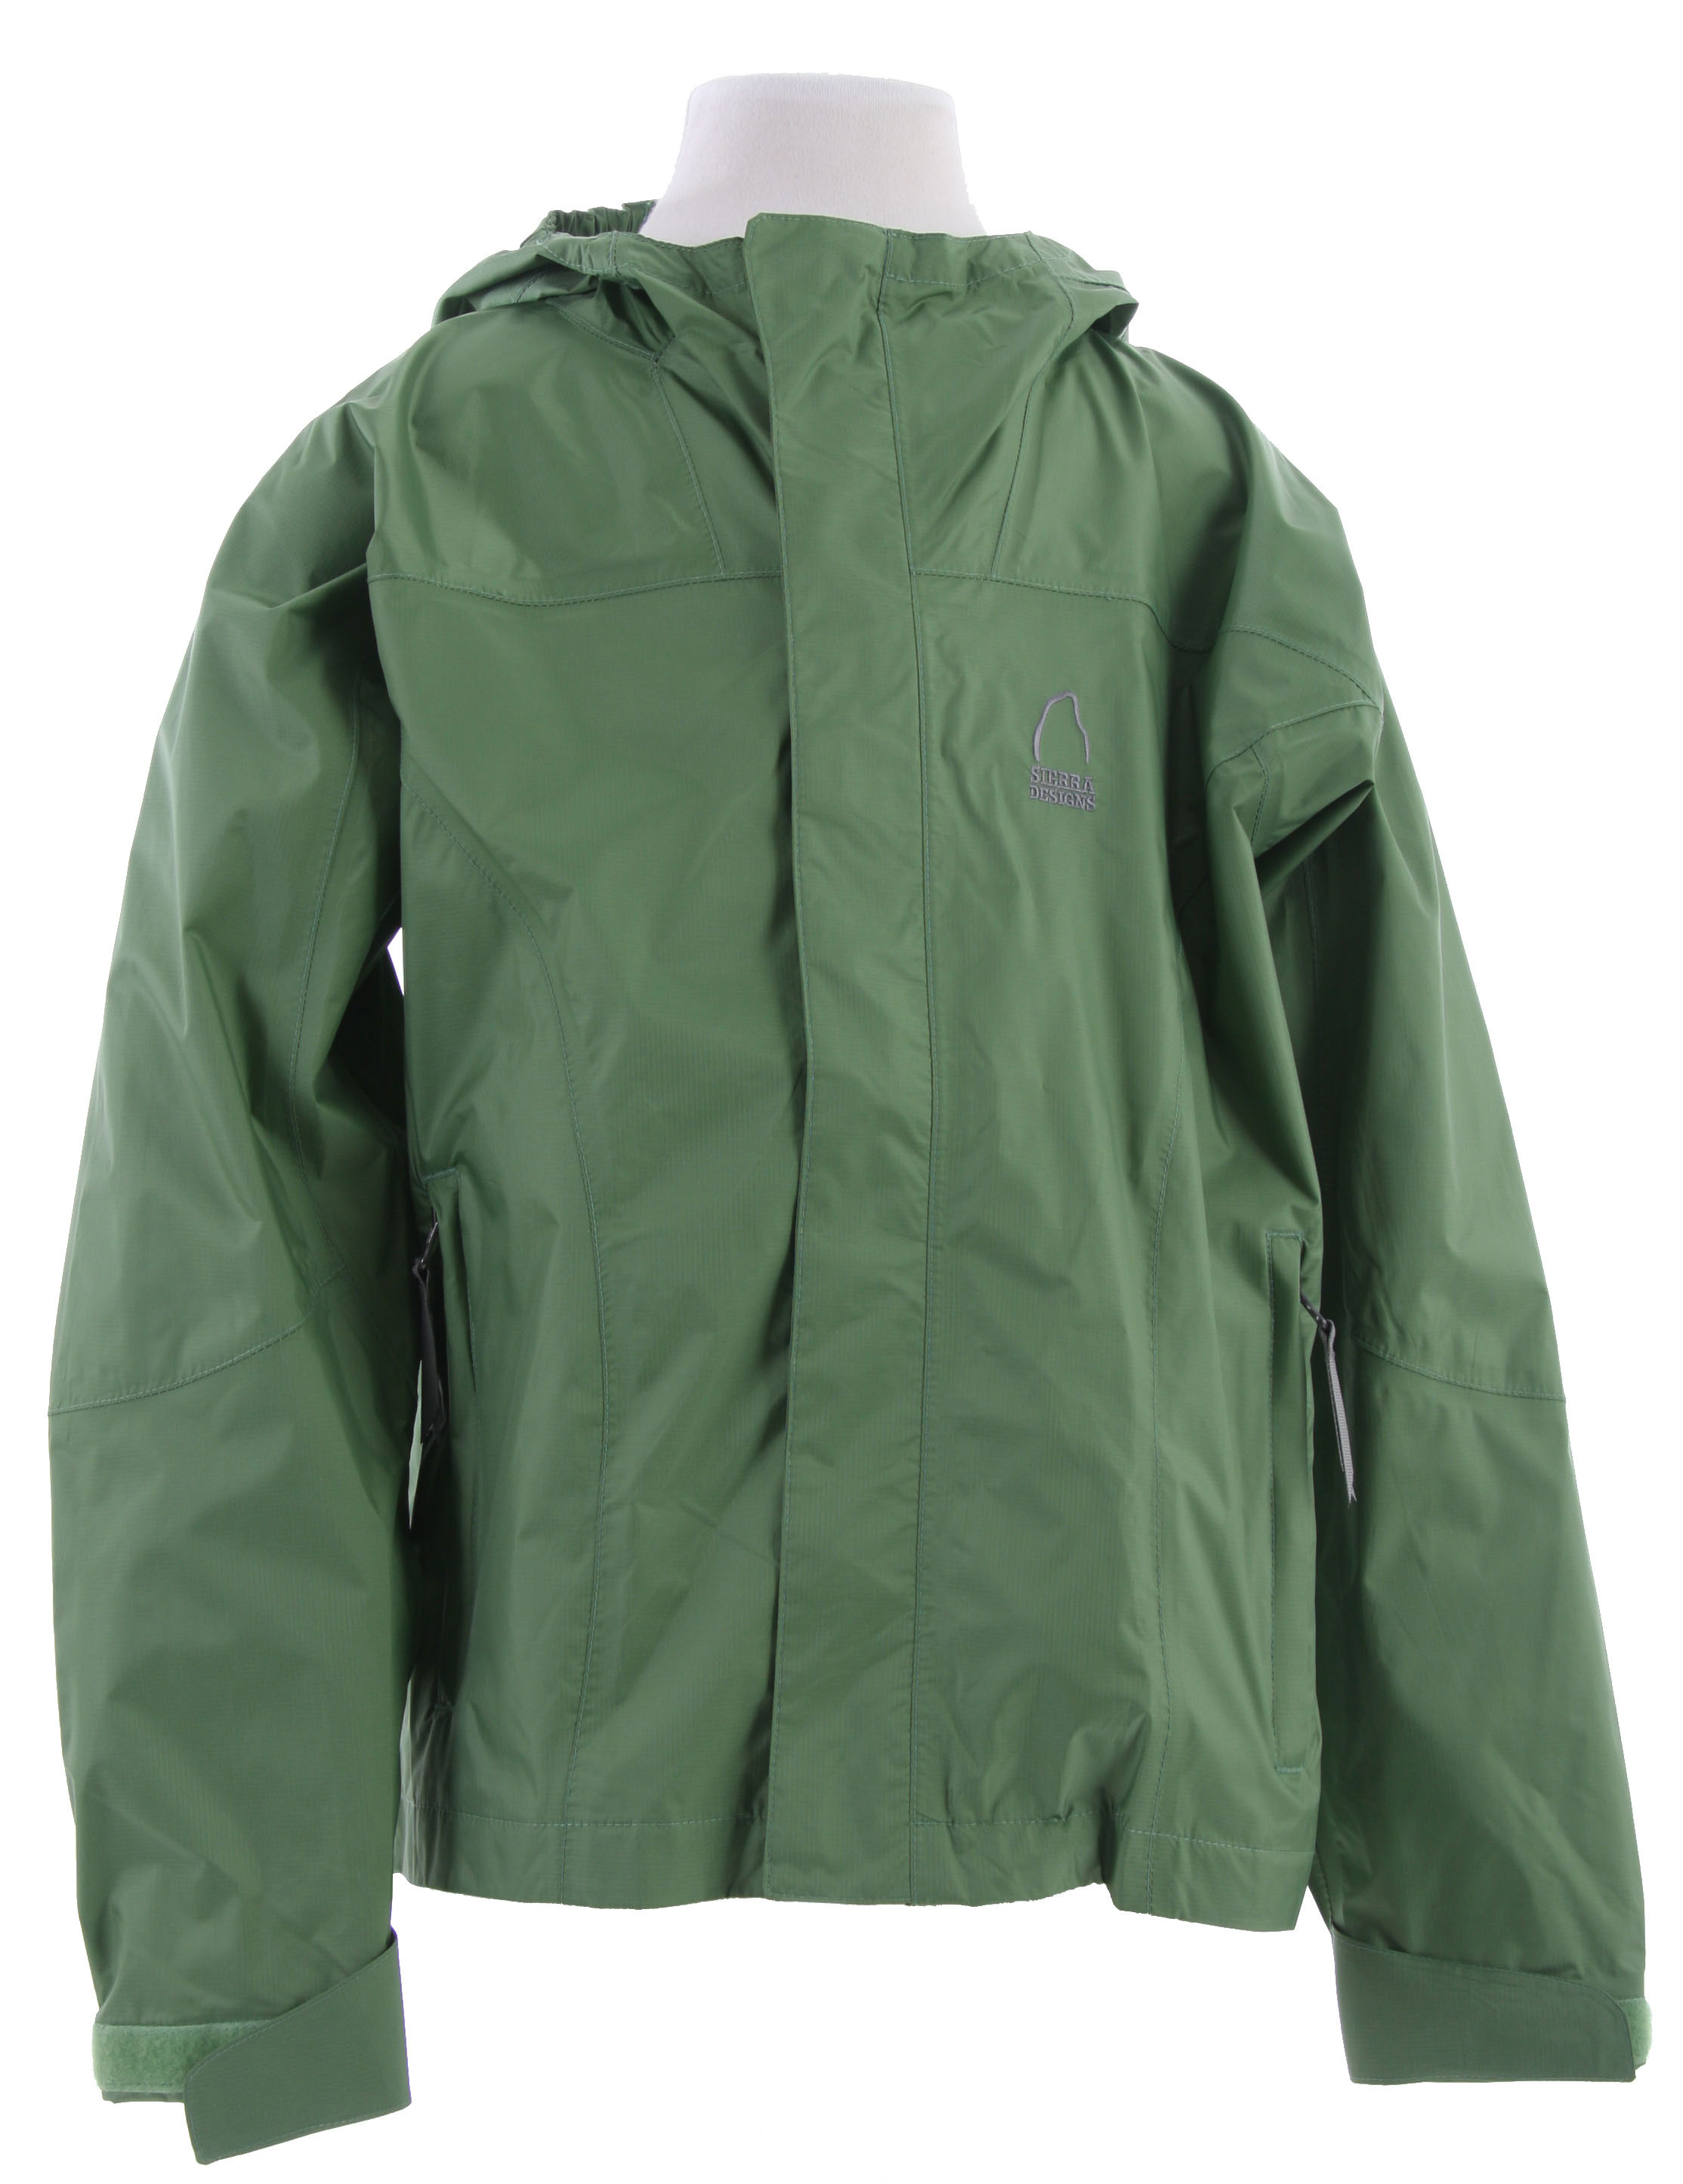 "Waterproof, breathable, the Sierra Designs Hurricane Girl's Shell Jacket is designed specifically for girls. We build these out of our reliable Hurricane fabric, with seam sealing and an adjustable hood.Key Features of the Sierra Designs Hurricane Girl's Shell Jacket: 5,000mm Waterproof 5,000g Breathability Fully Taped PVC-Free Seams Encased Elastic on Each Side of Hood and Hood Has Visor Reverse Coil Center Front Zipper 2 Zippered Hand Pockets 1 Zippered Interior Chest Pocket with Earbud Portal Adjustable Cuffs Center Back Length 23.25"" (M) Weight 8.5 oz Hurricane 5,000/5,000) 100% Nylon Ripstop, 40D, Solvent-Free Laminate with DWR finish, 3.45 oz/yd; (117 g/sqm) - $43.95"